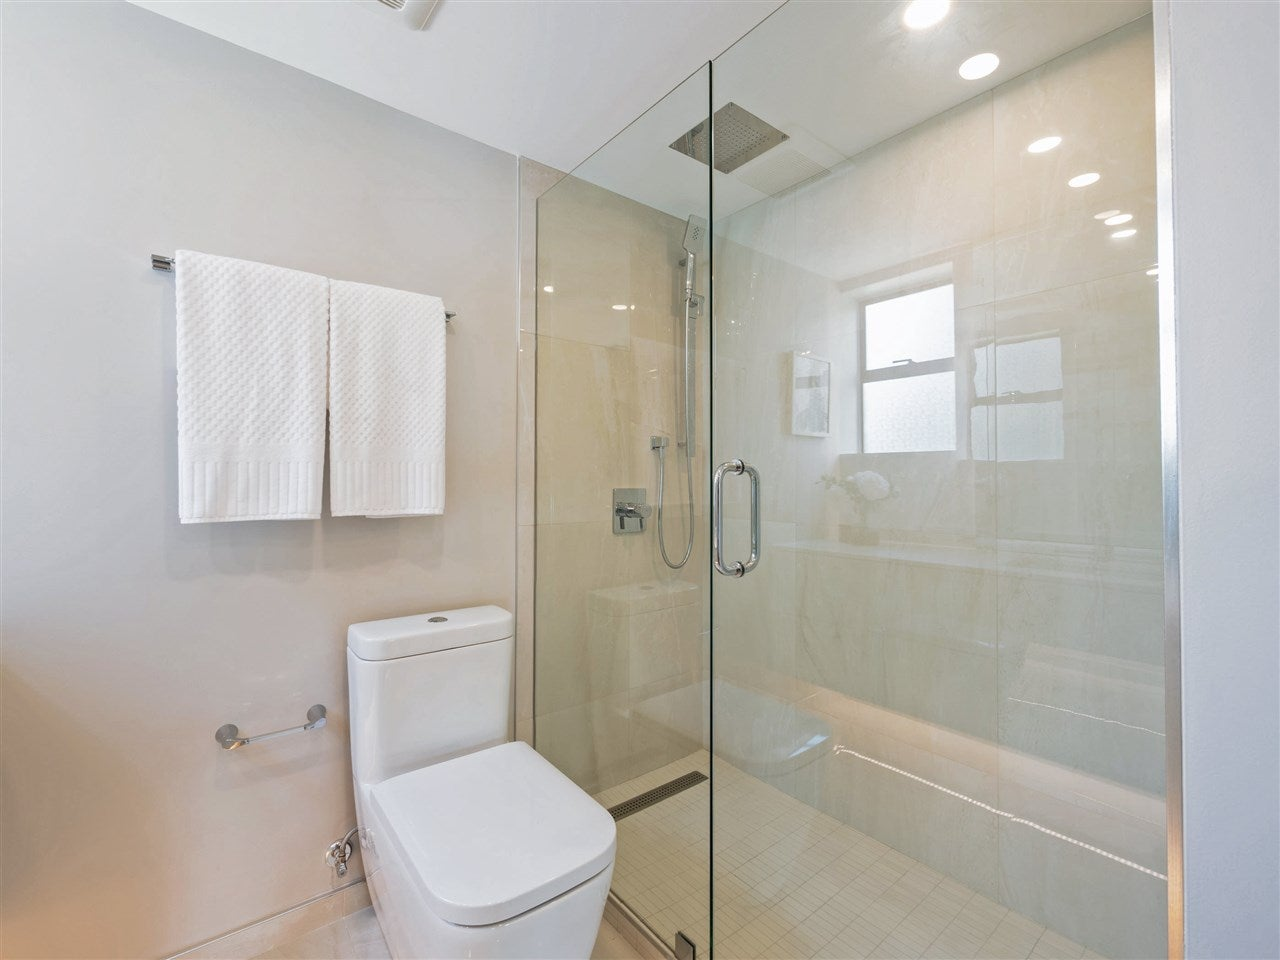 201 475 13TH STREET - Ambleside Apartment/Condo for sale, 3 Bedrooms (R2475640) - #20